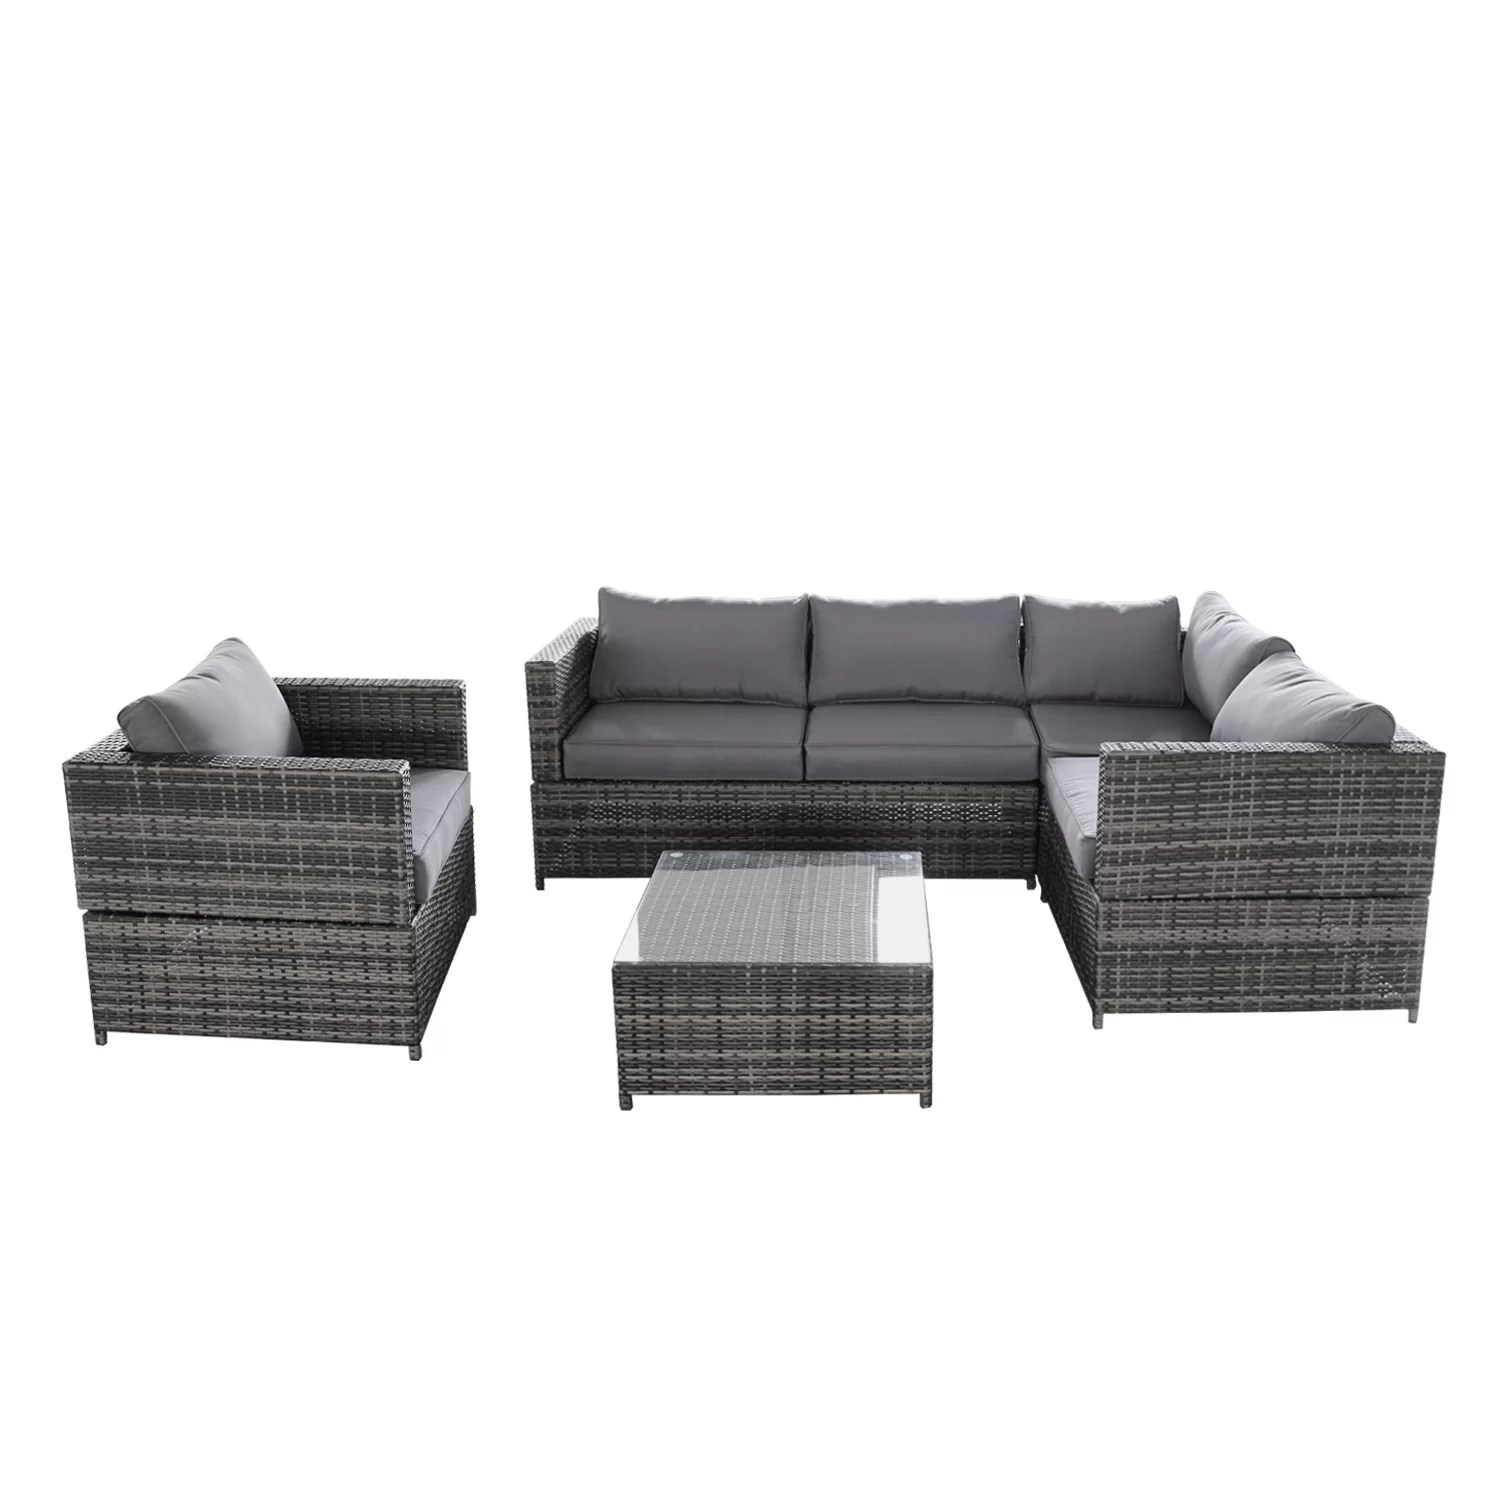 Baptist 6 Piece Rattan Sofa Set With Cushions Zipcode Design Success 4 Piece Sectional Set With Cushions